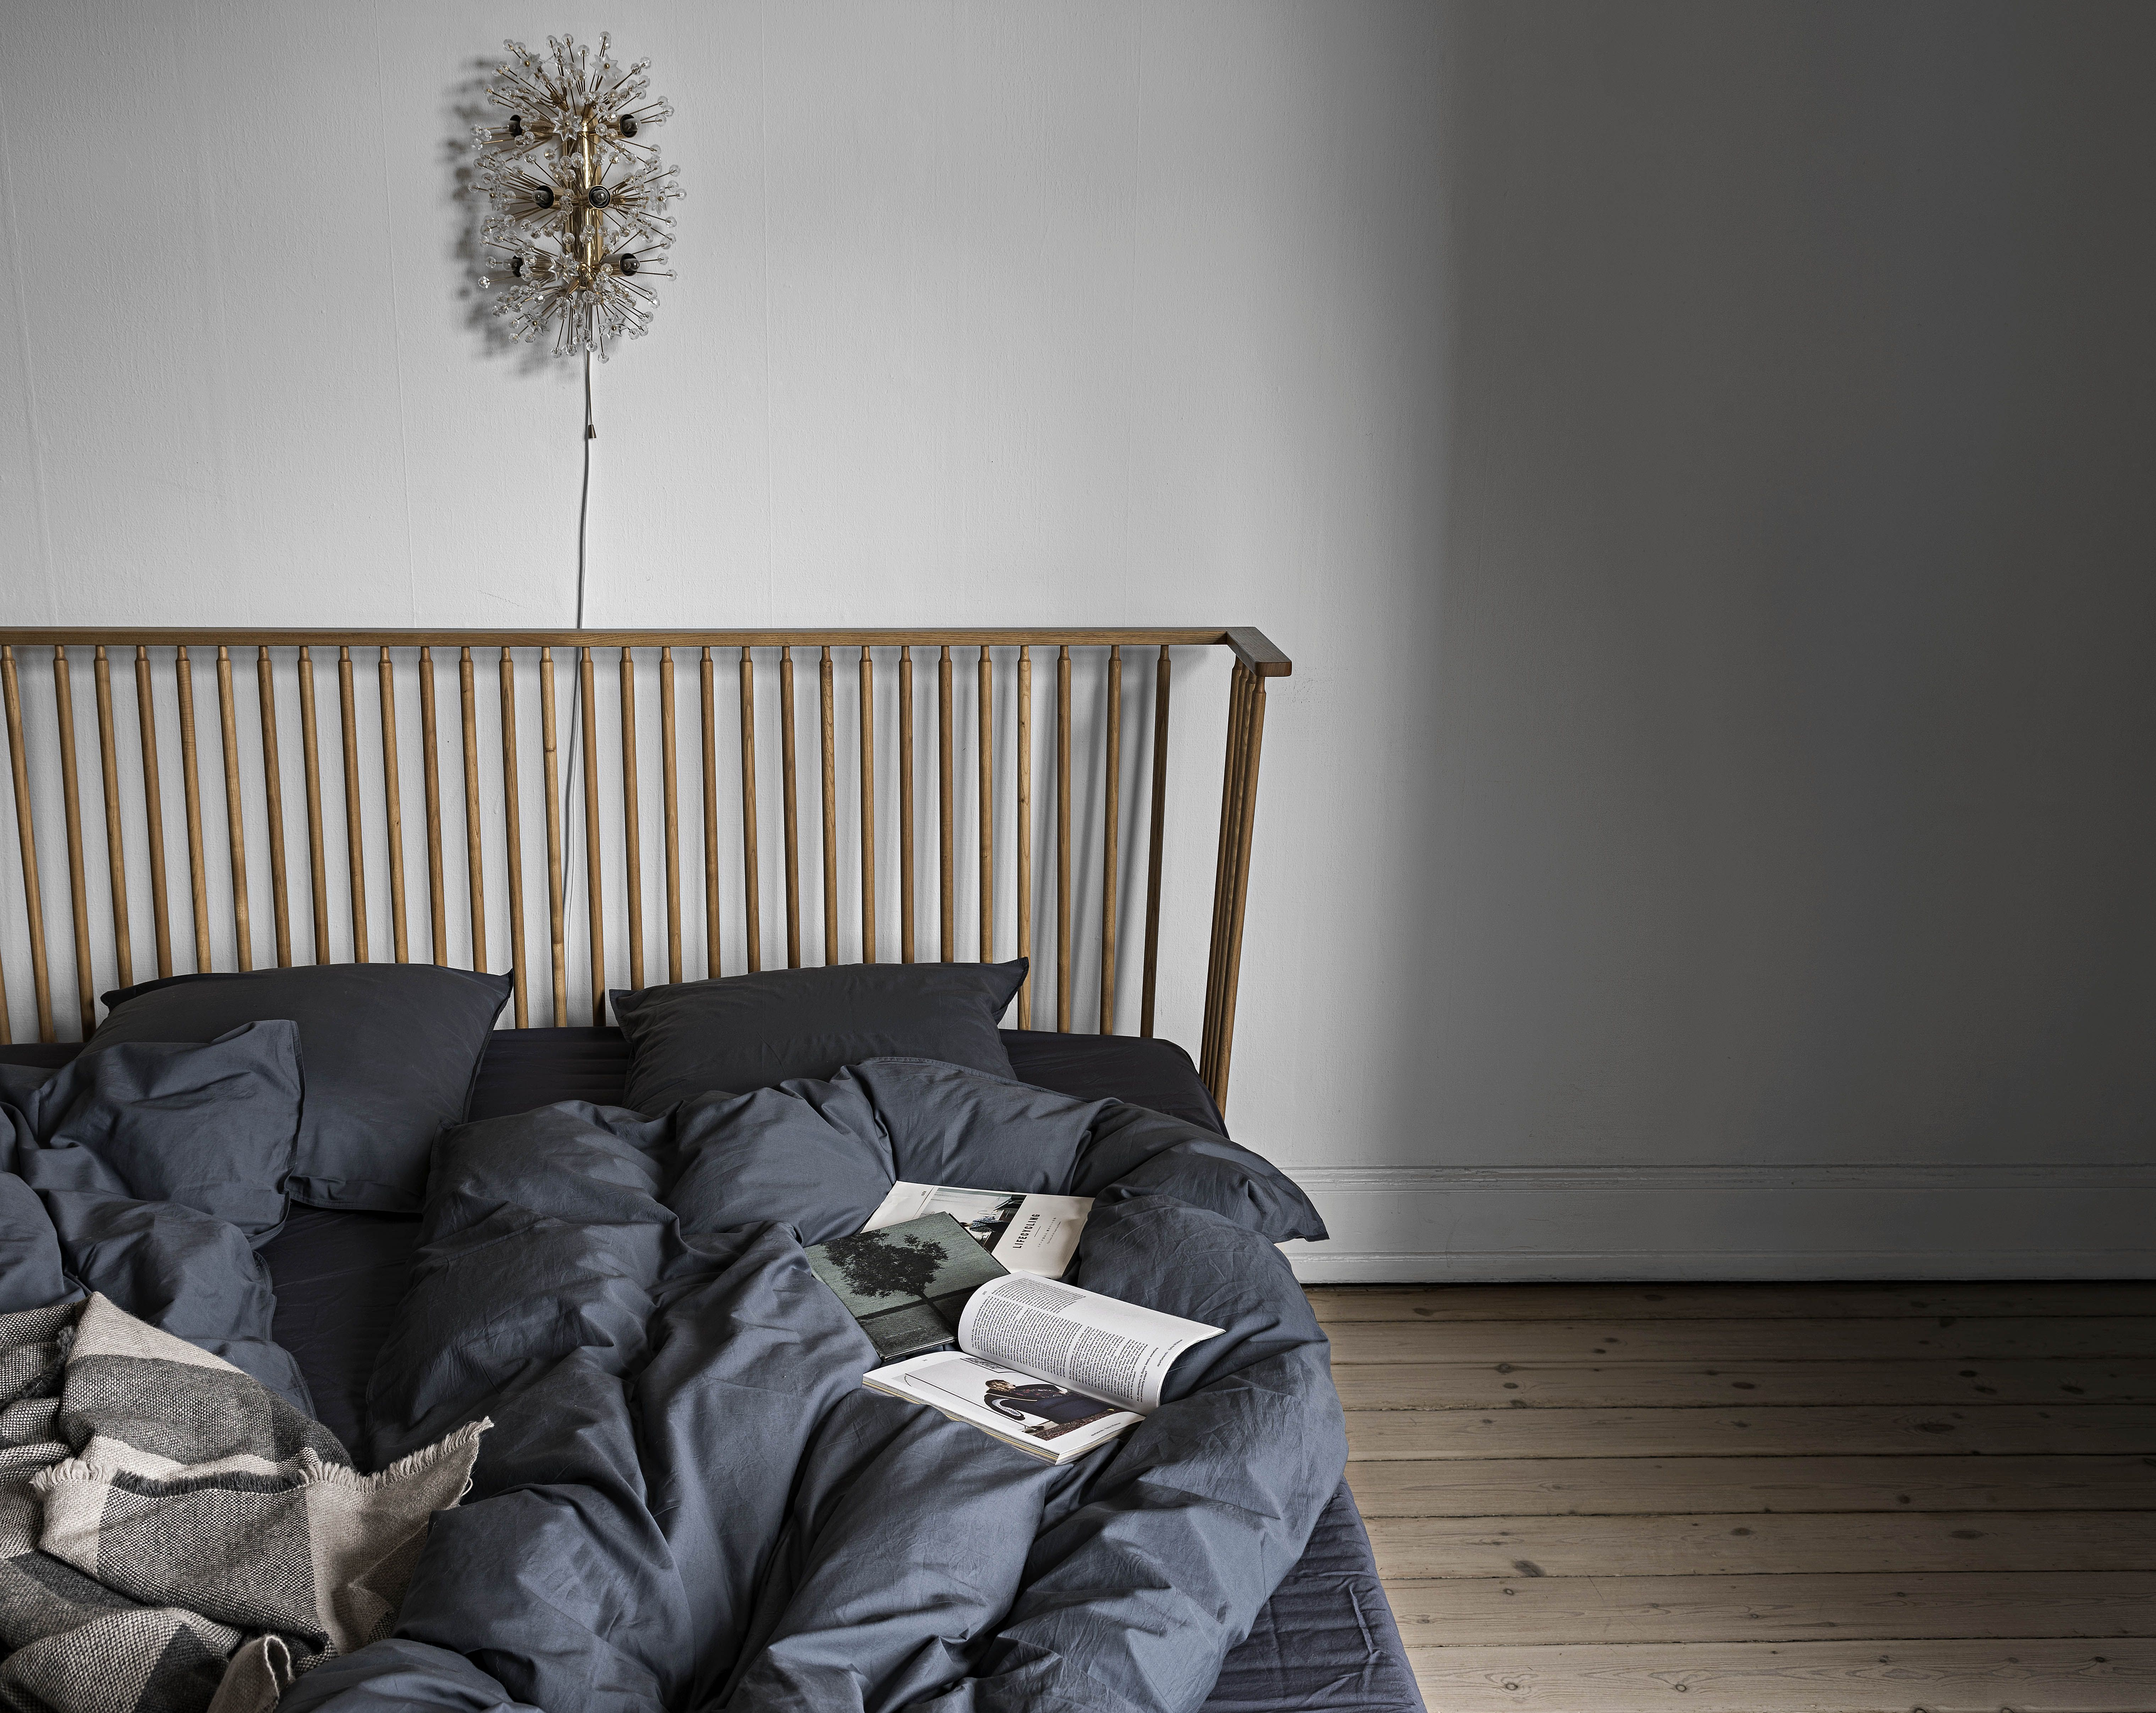 Midnight Dark Blue Bedlinen From Aiayu Styled On An Ilse Crawford Bed Bed Linens Luxury Luxury Bedding Bed